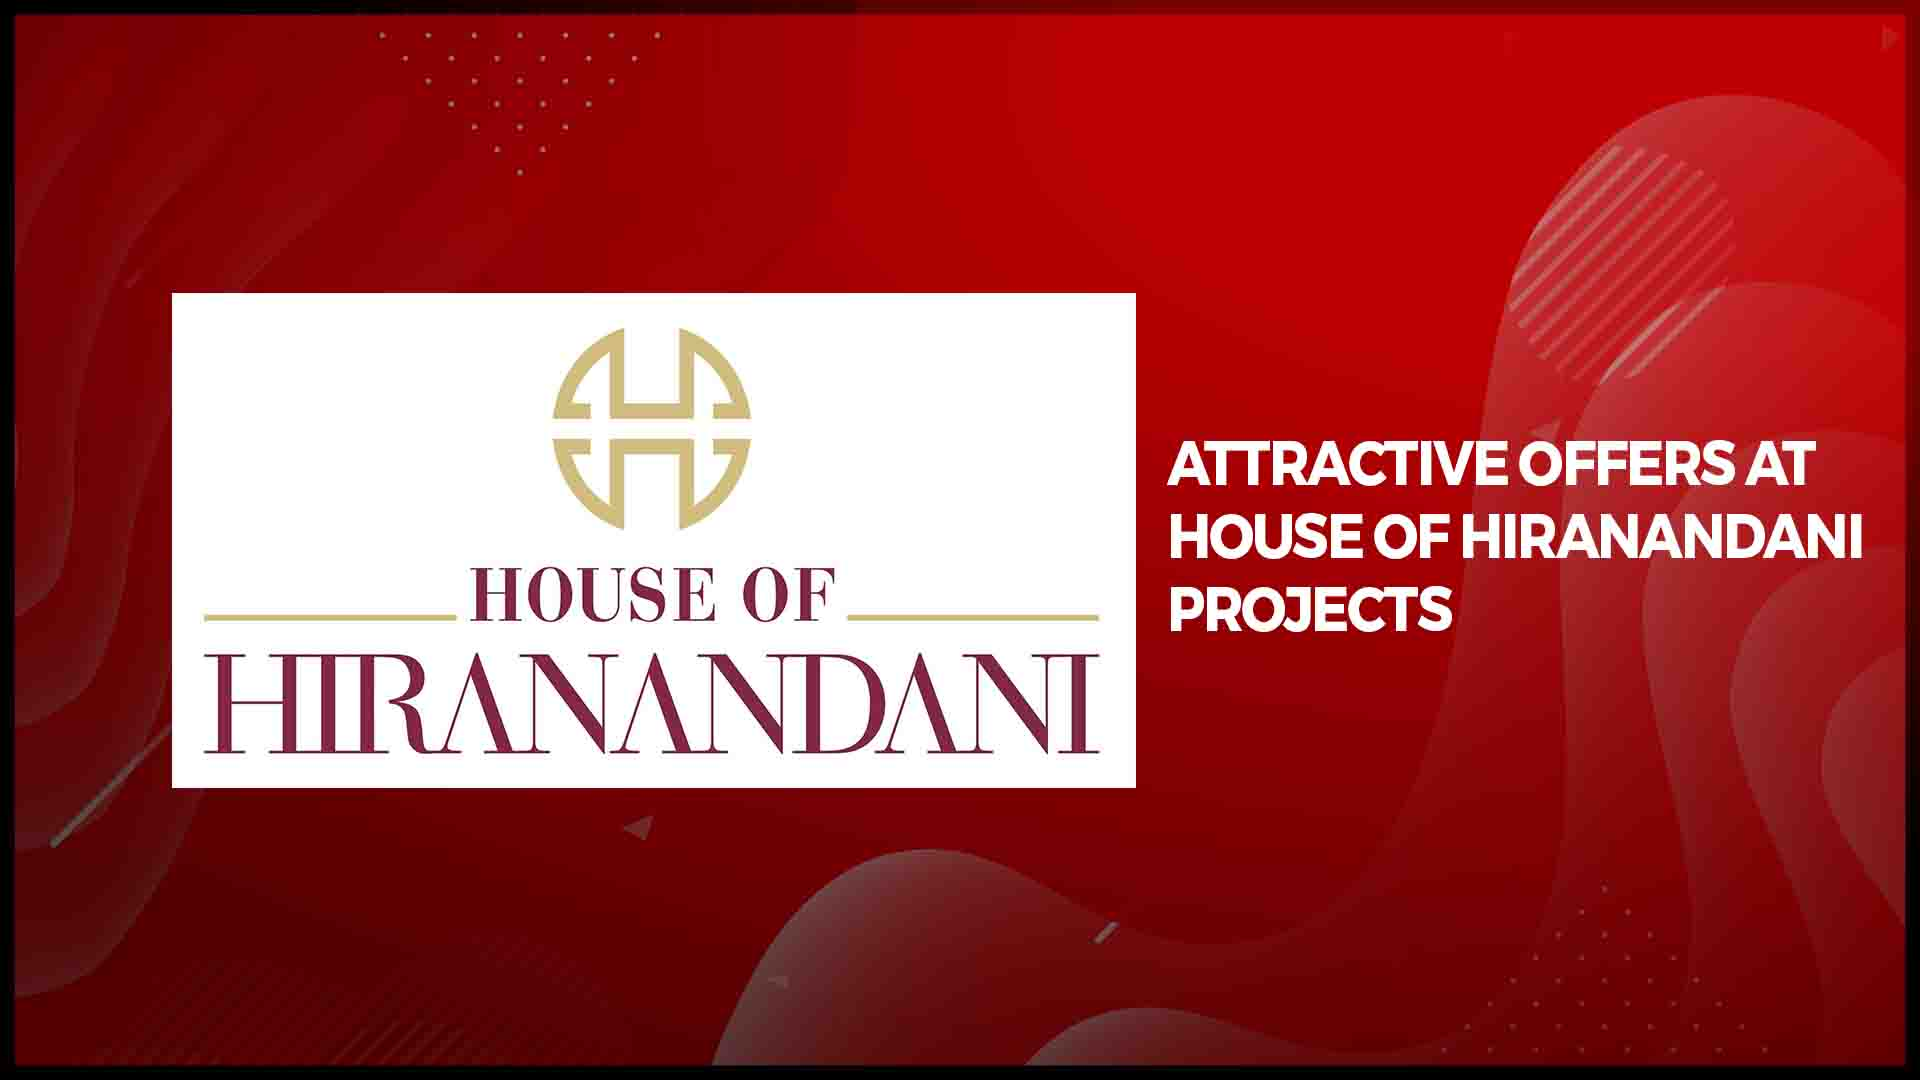 House of Hiranandani Announces Attractive Offers in South India